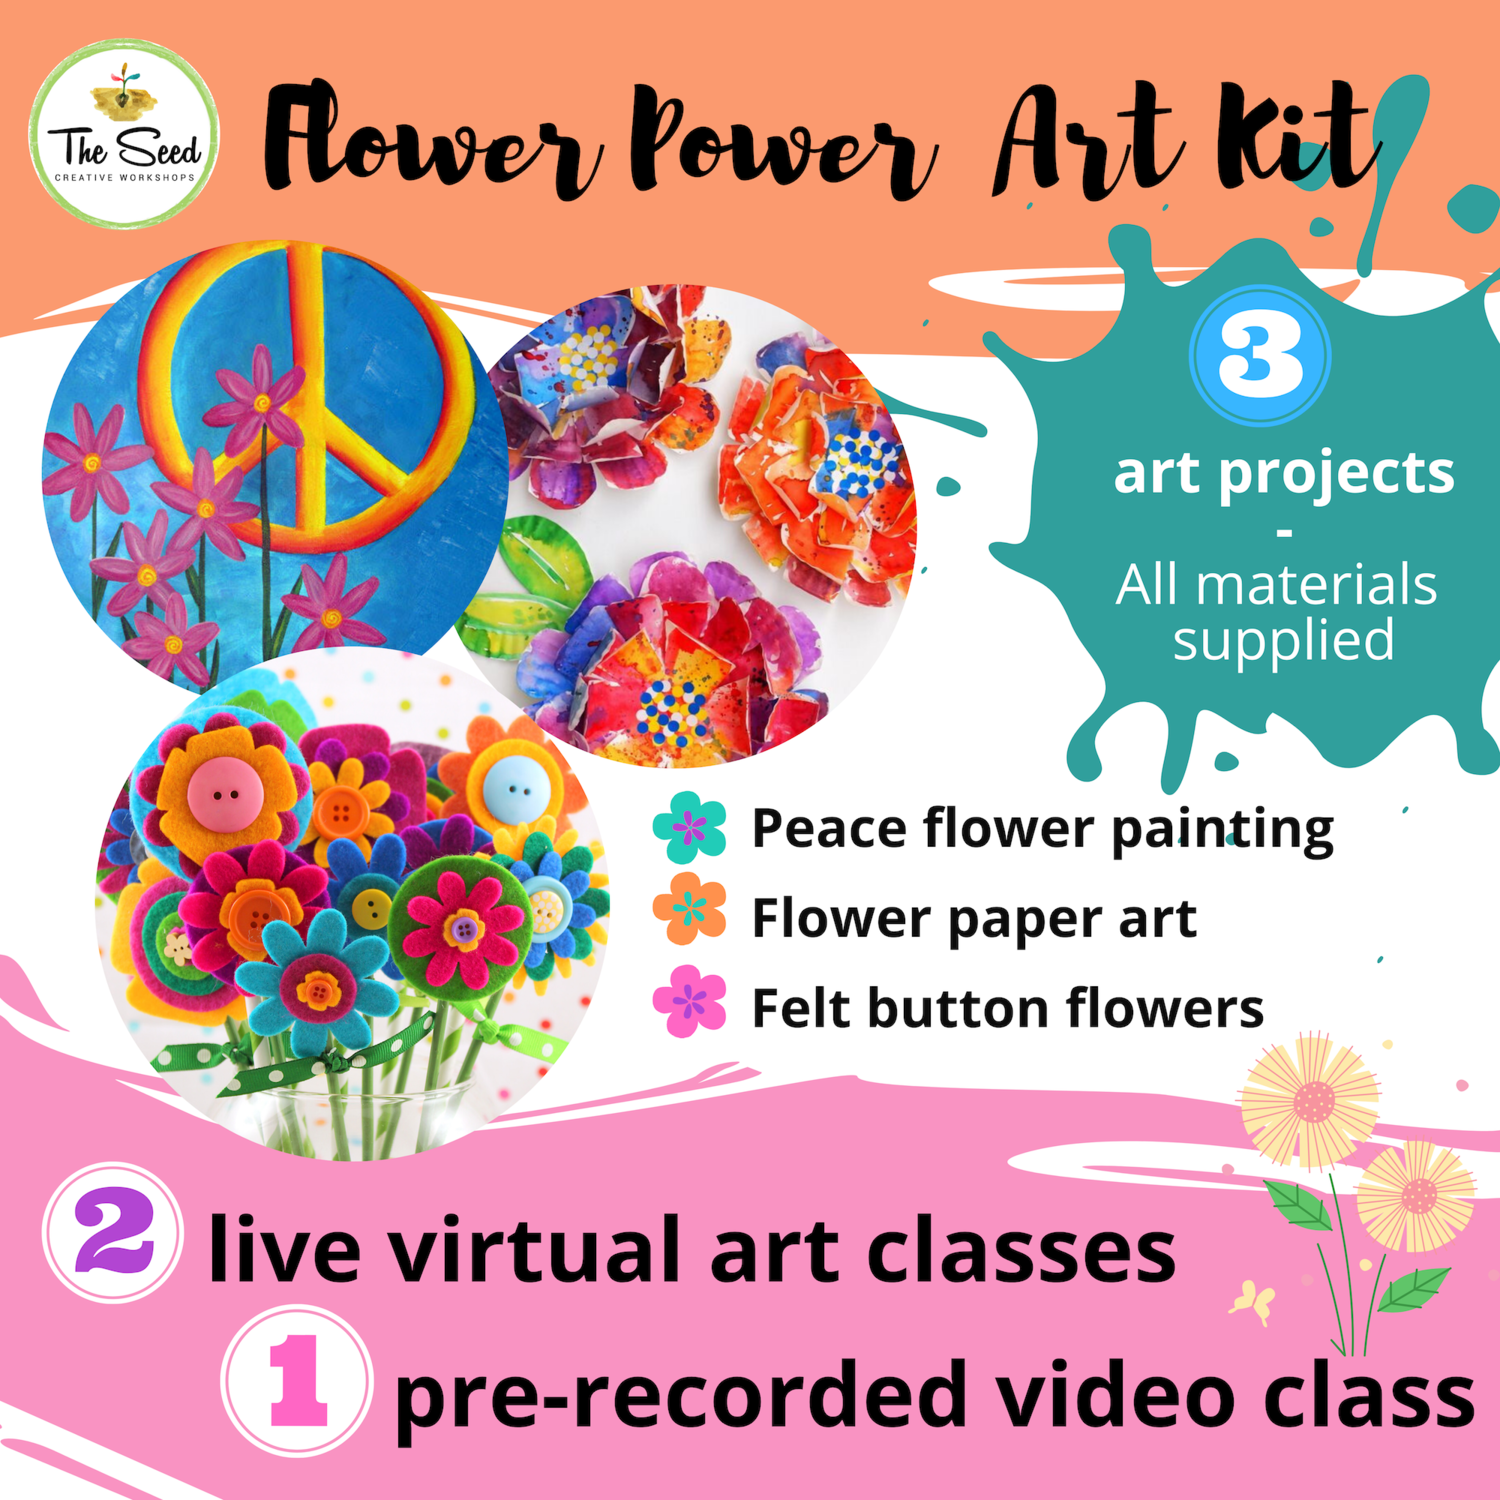 Flower Power Art Relief Kit - live classes + all materials